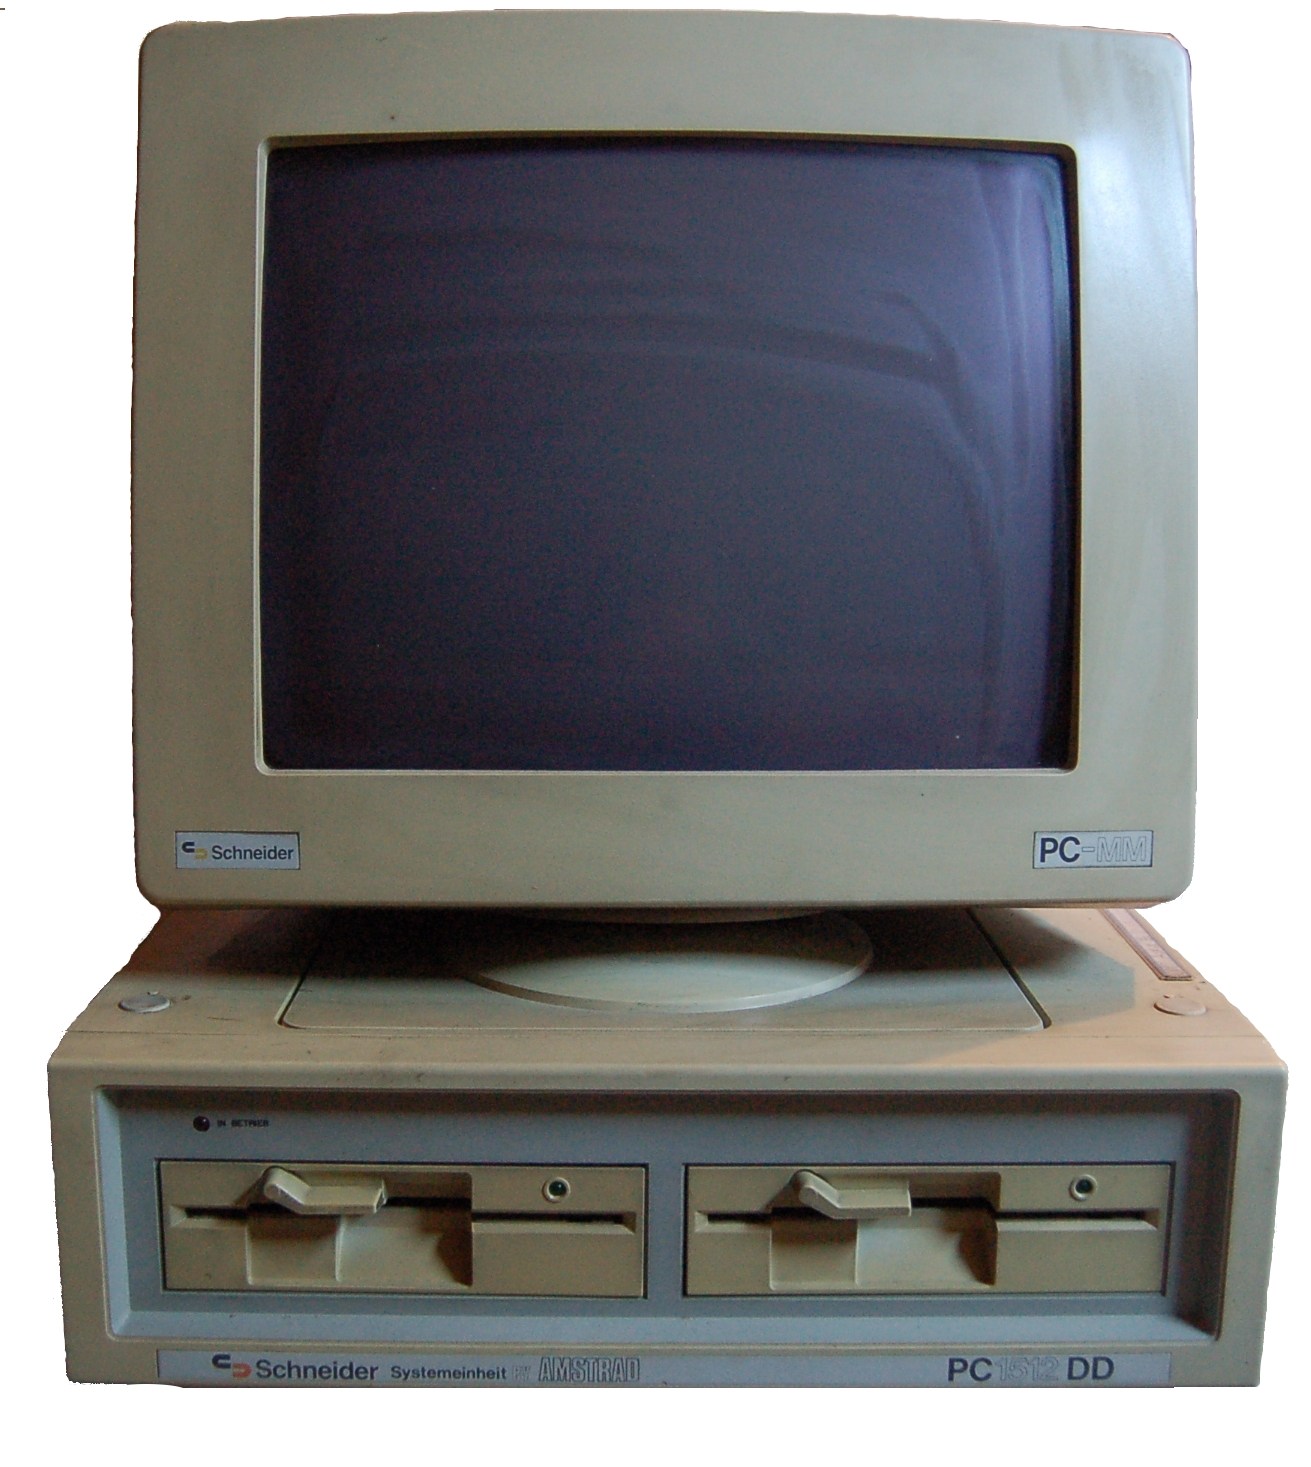 Amstrad Png - File:Amstrad 1512 DD.jpg - Wikimedia Commons